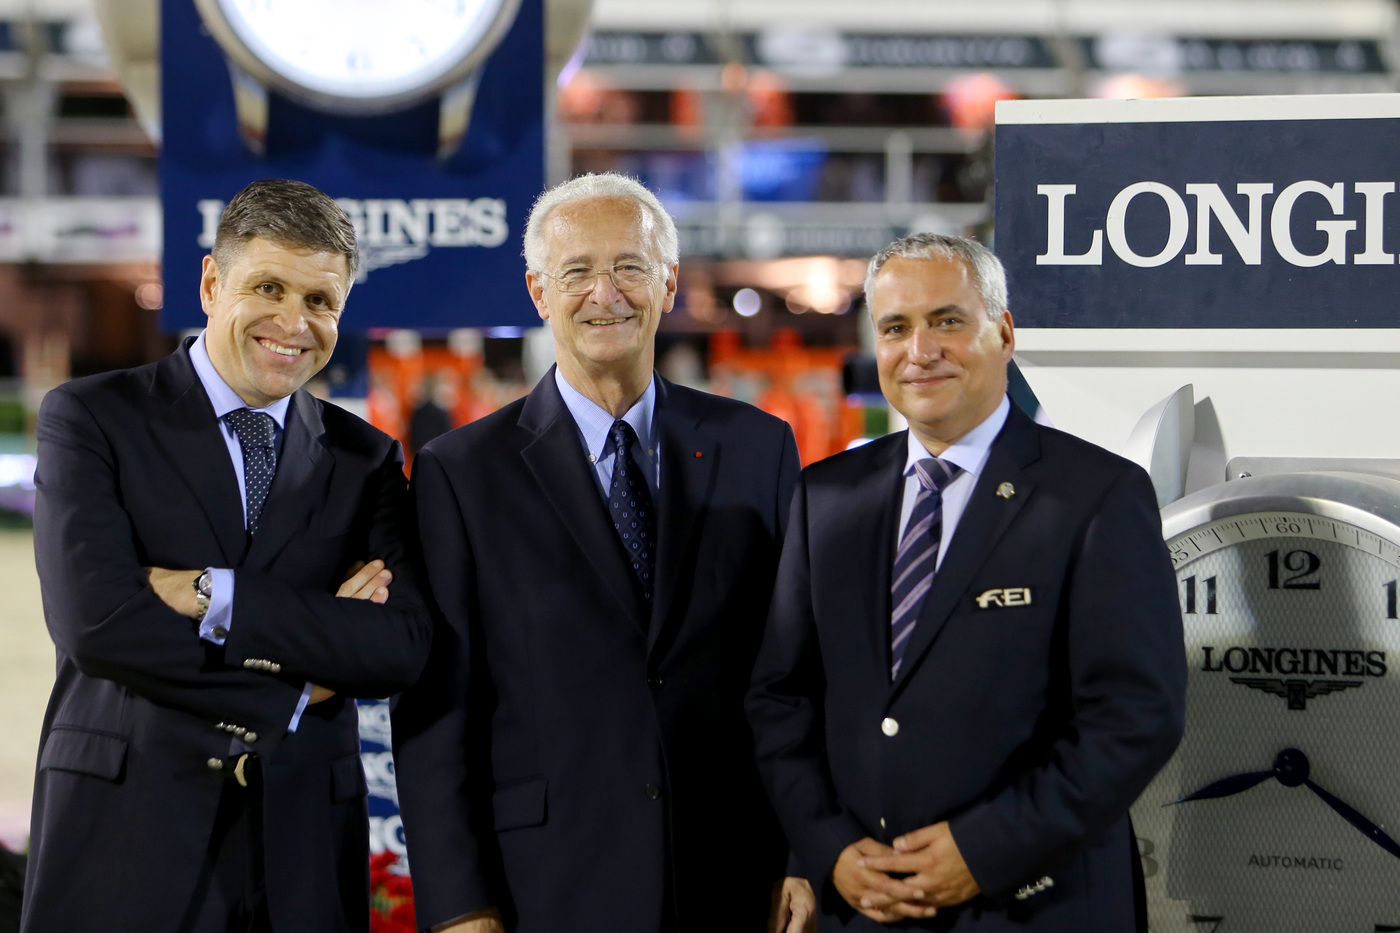 Longines Show Jumping Event: Longines timed the victory of Team Belgium at the Furusiyya FEI Nations CupTM Jumping final  2